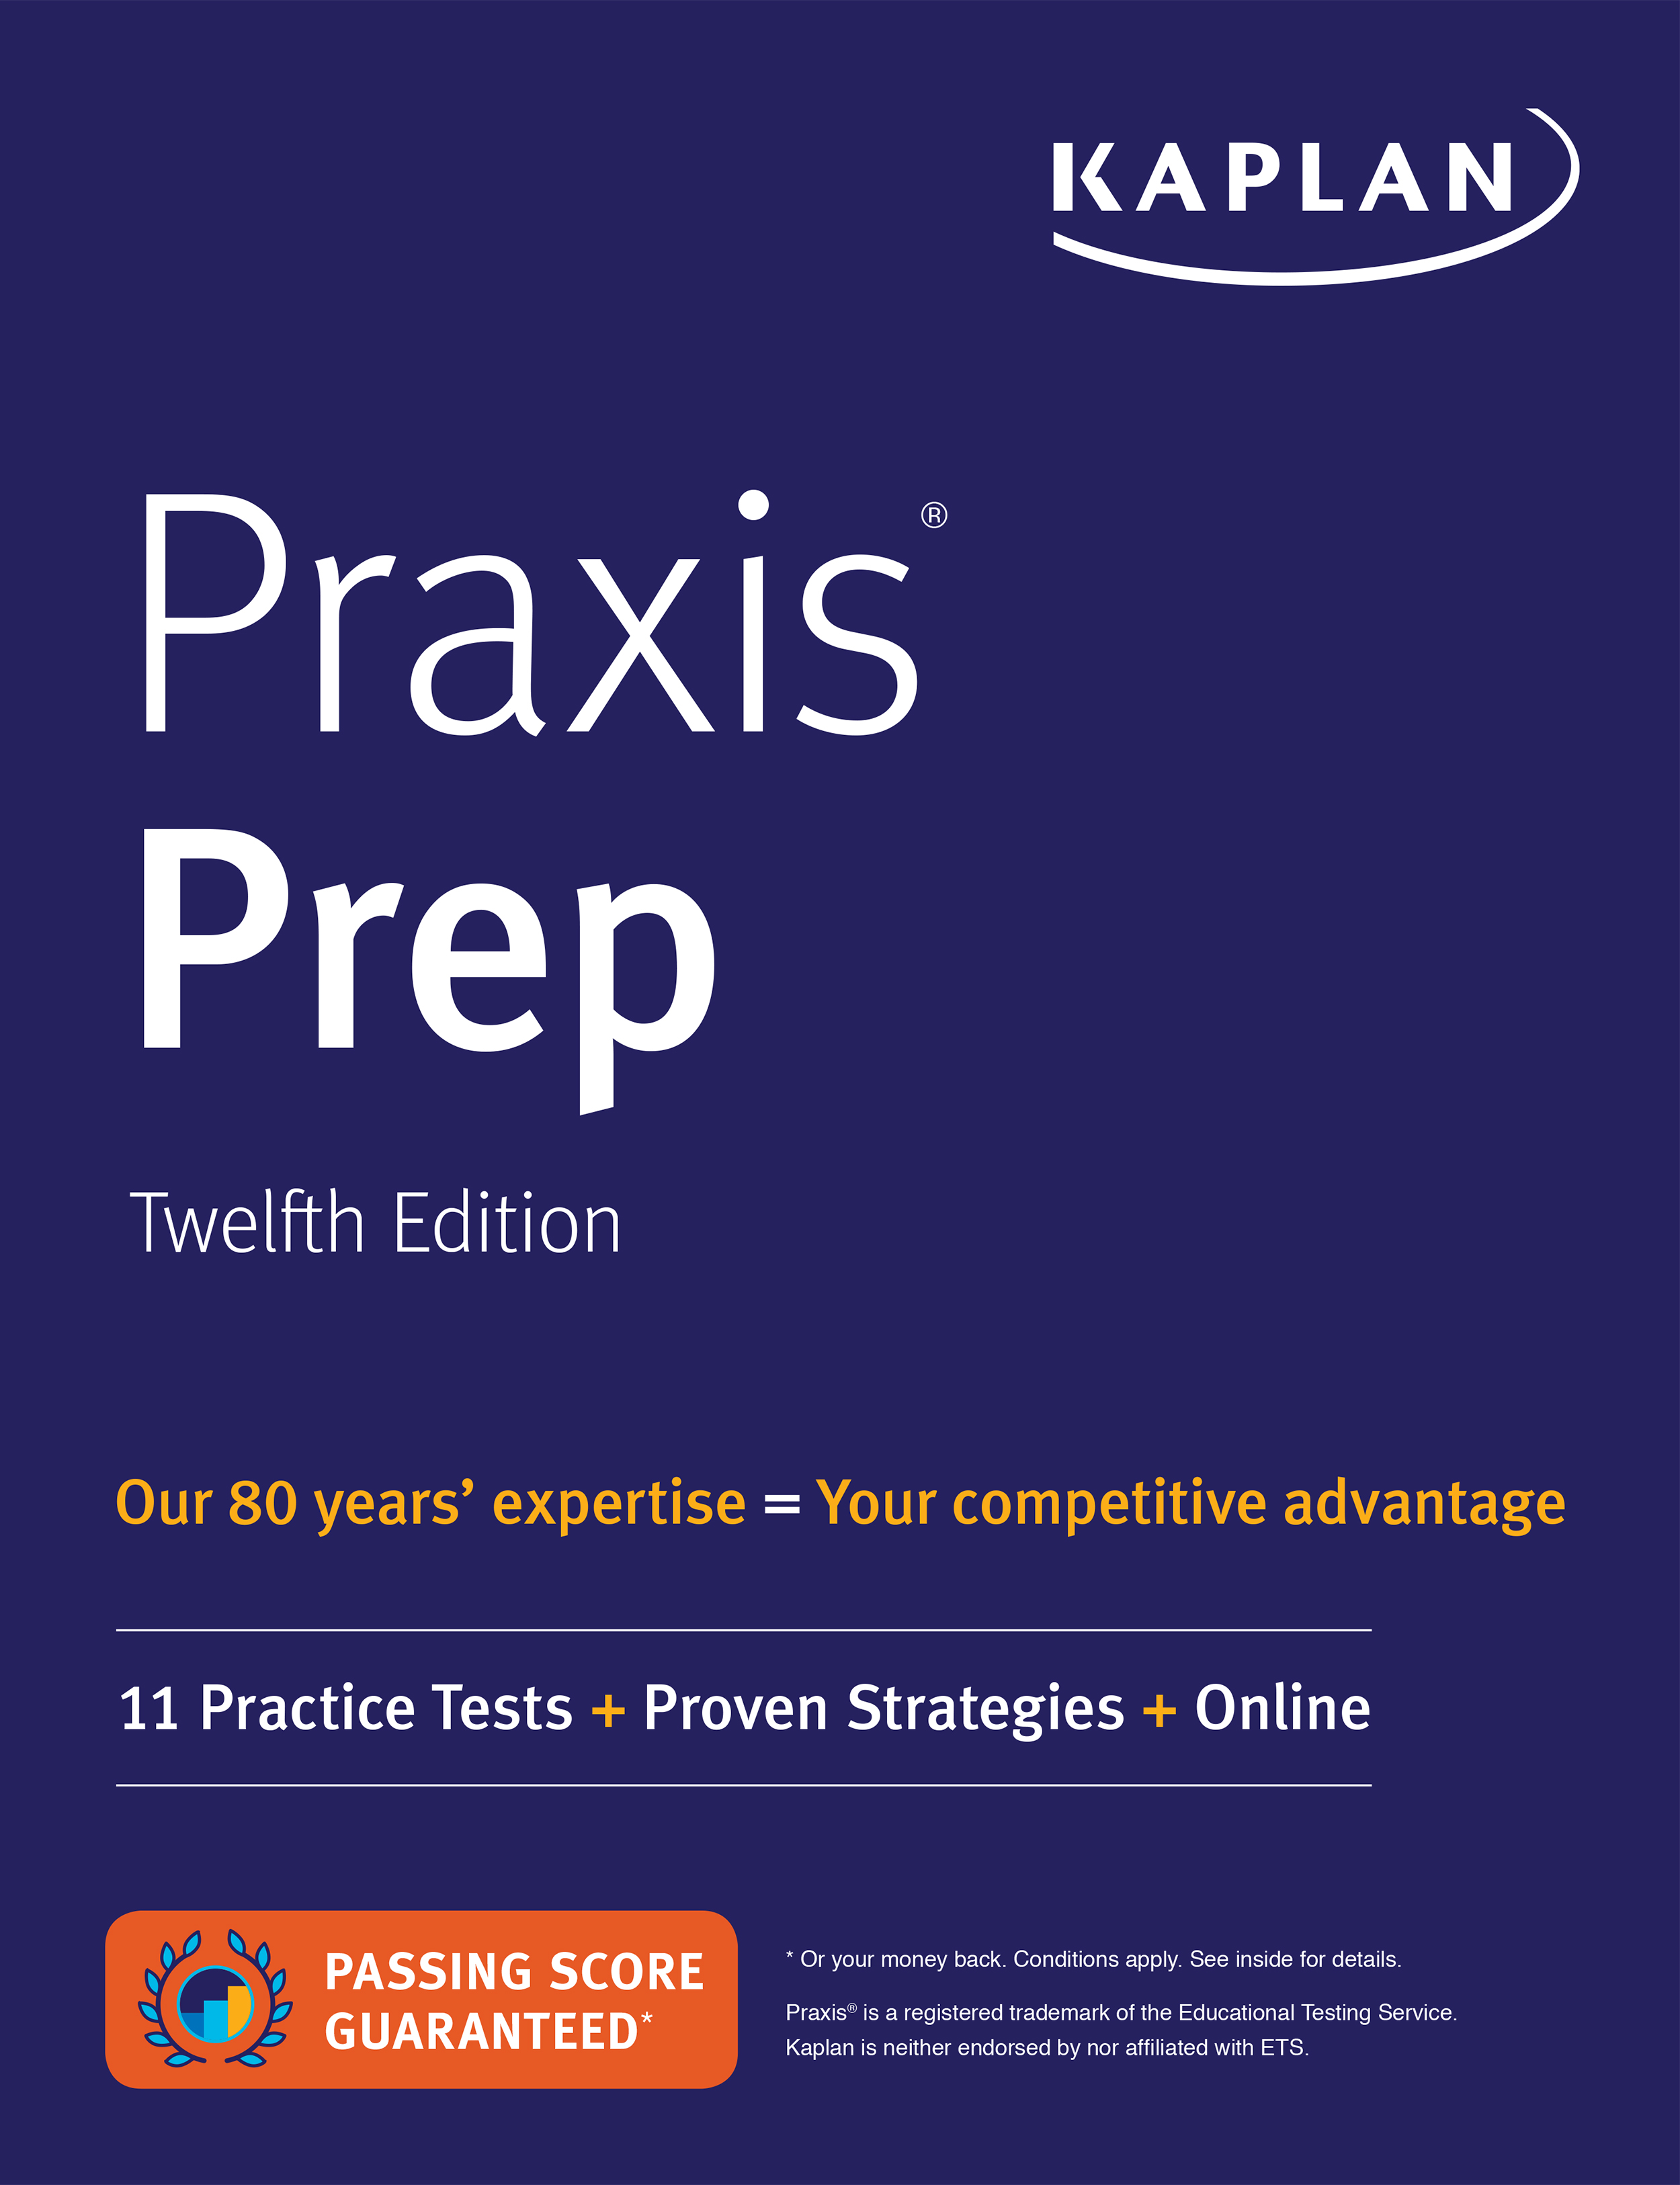 Praxis Prep, 12th edition